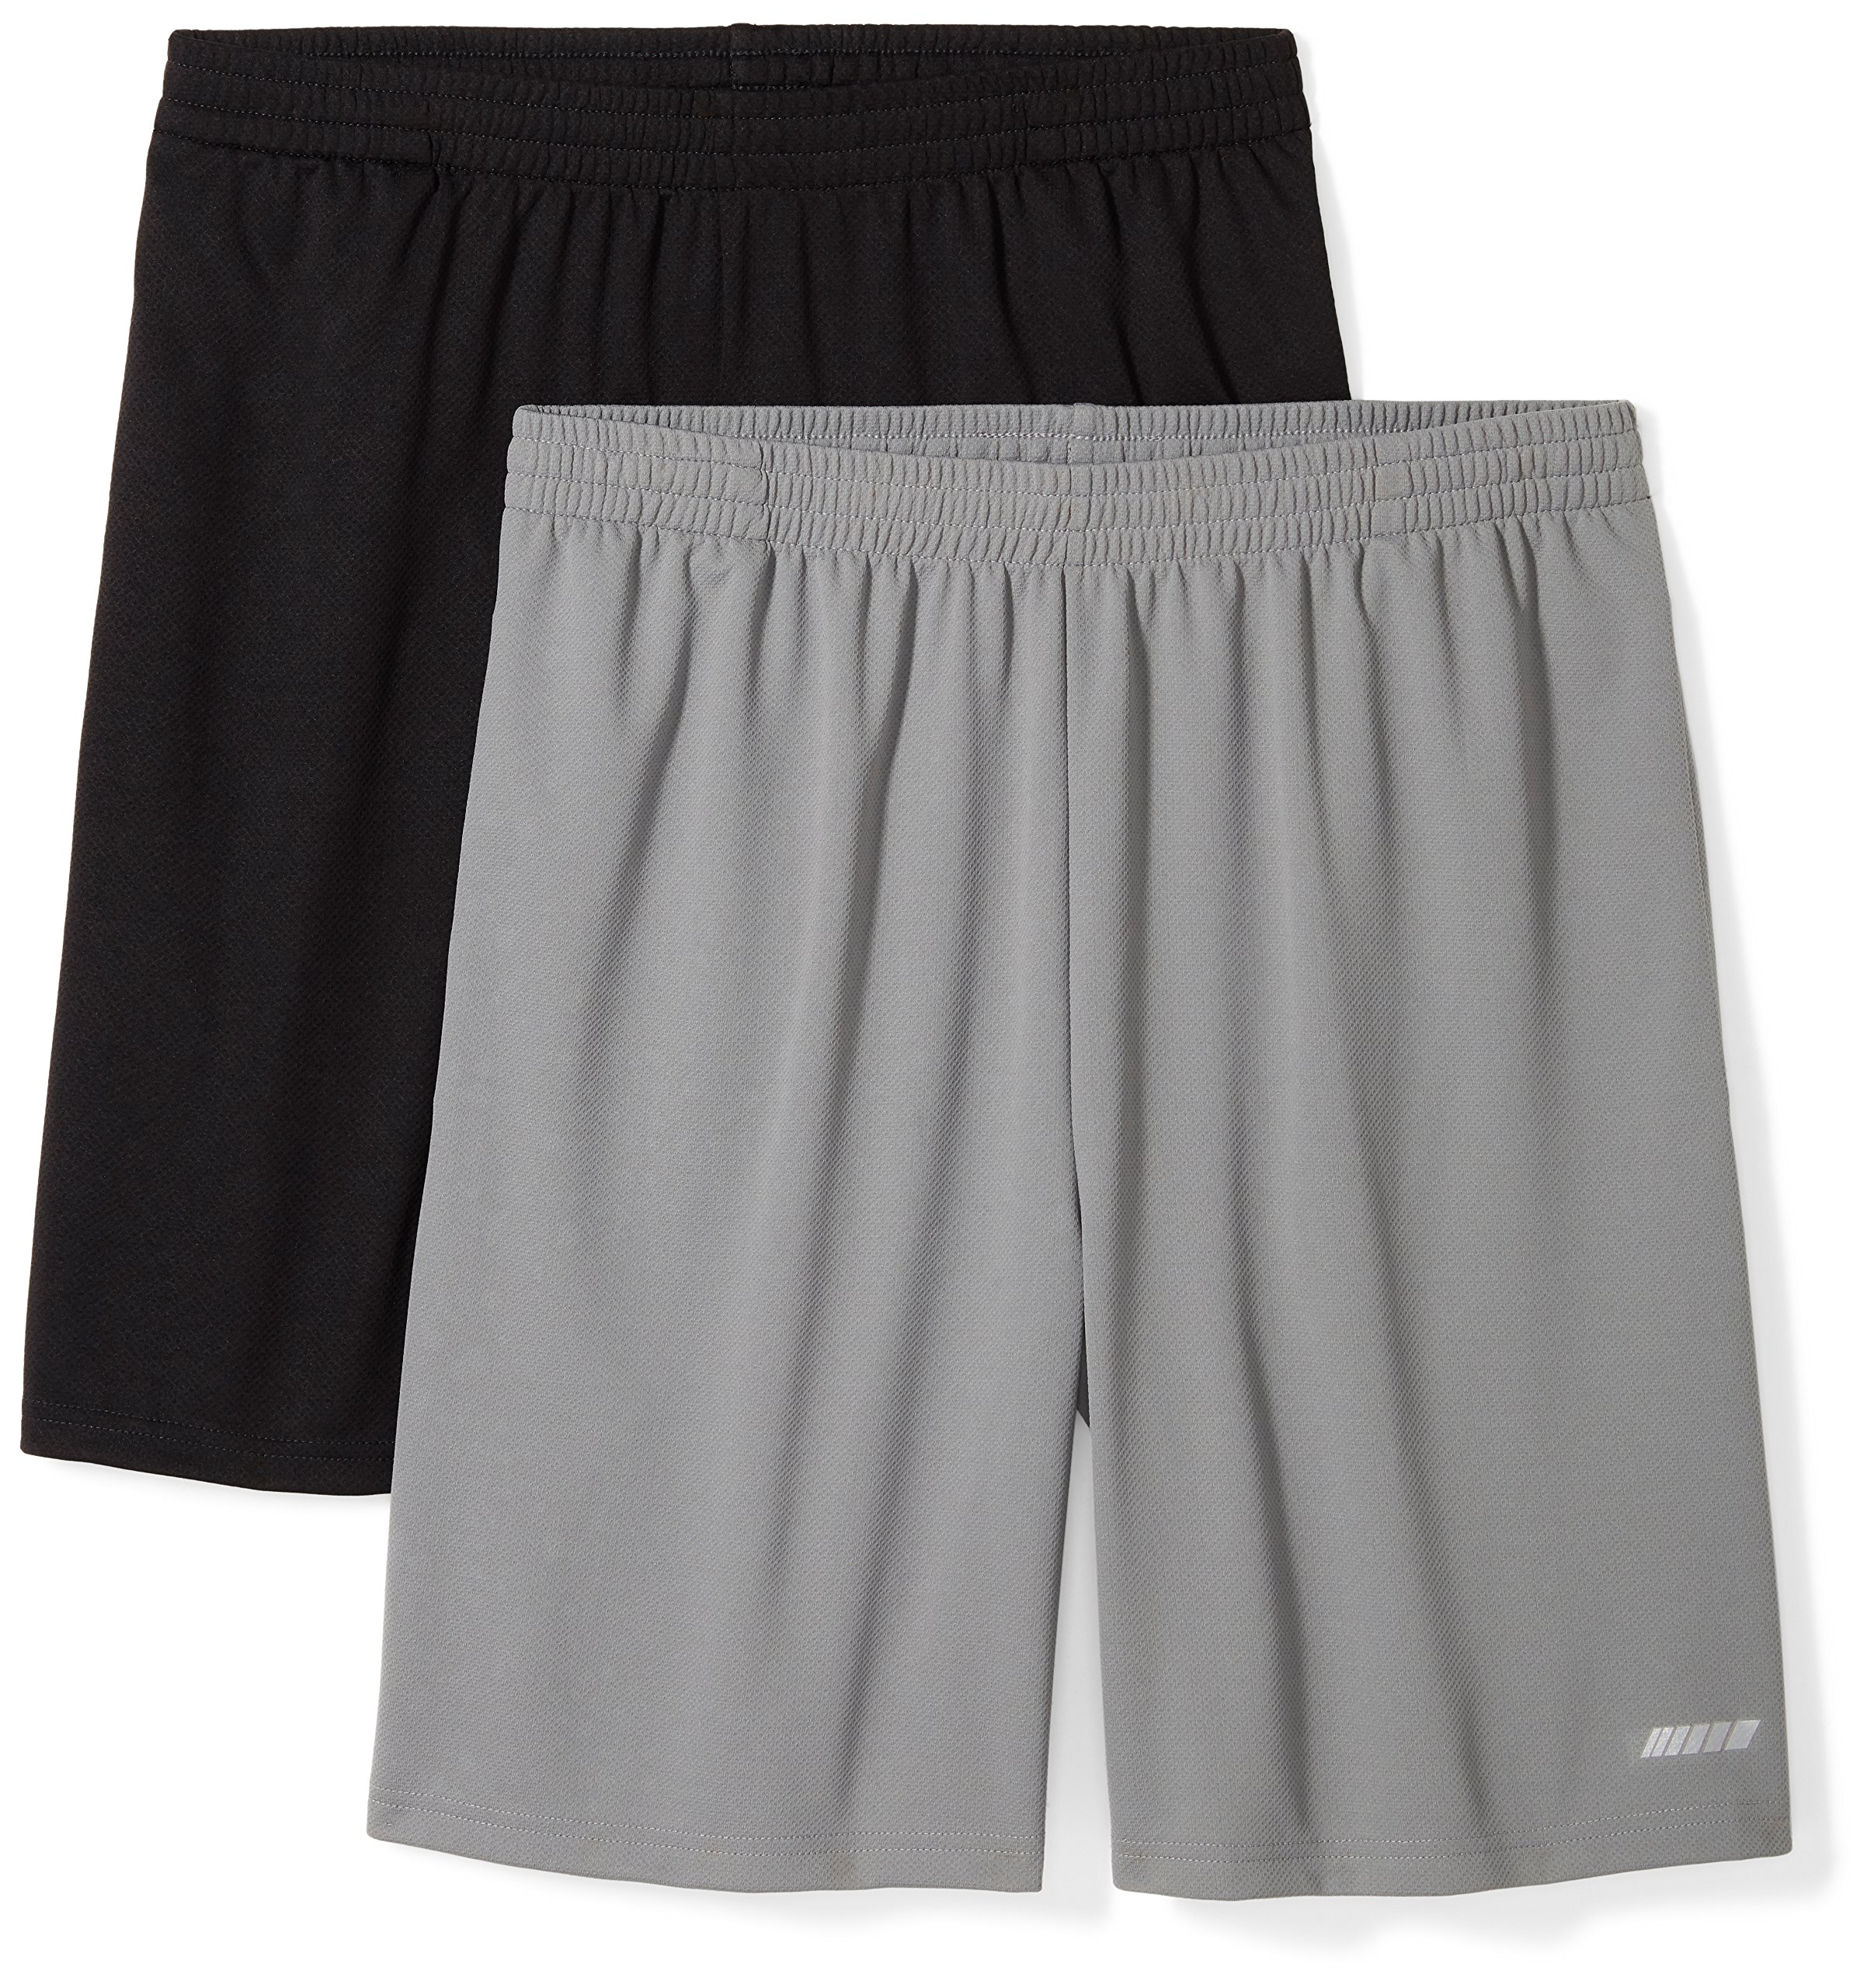 Amazon Essentials Men's 2-Pack Loose-Fit Performance Shorts, Black/Medium Grey, Medium by Amazon Essentials